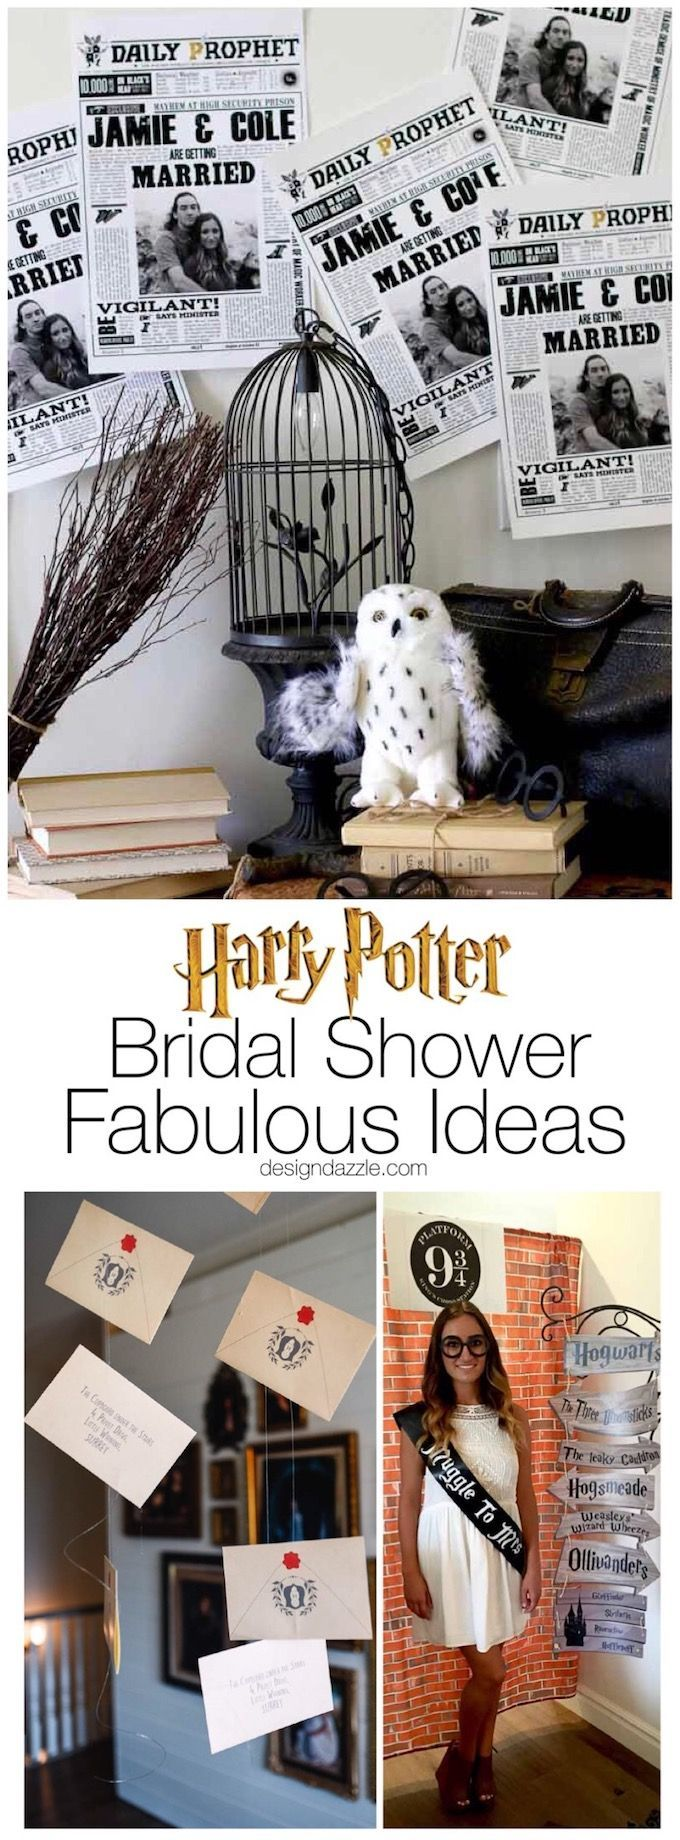 """Is your bride to be a Harry Potter fanatic? This Harry Potter themed bridal shower will make her """"Muggle to Mrs."""" dreams come true! 